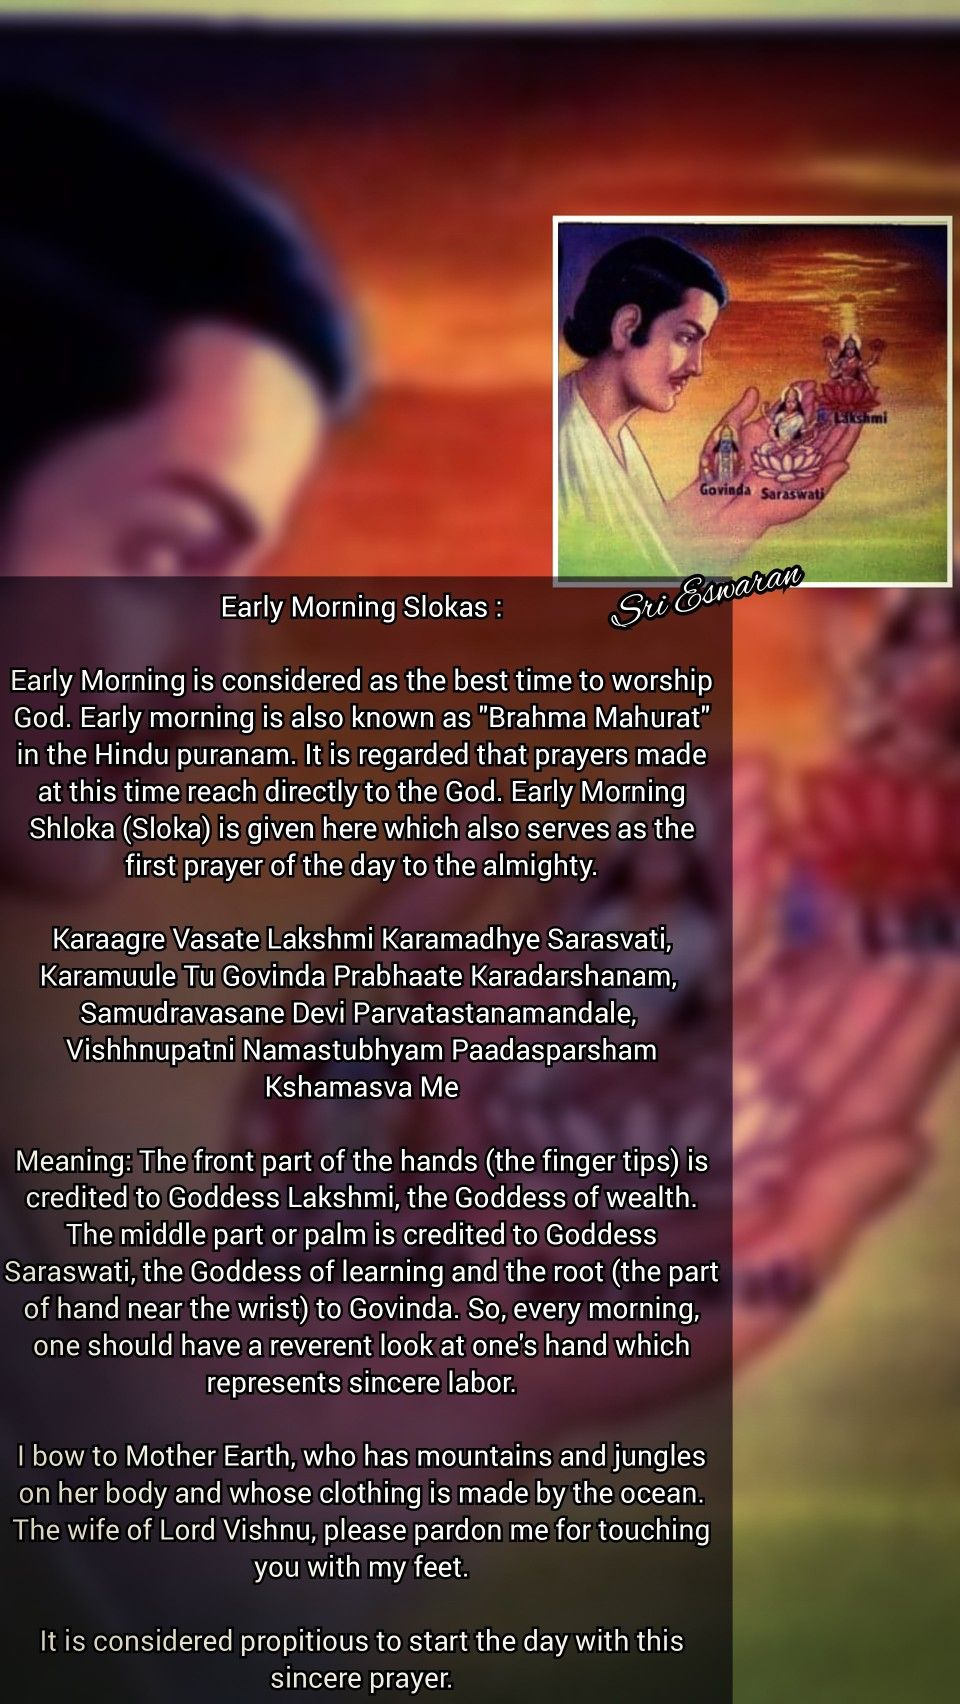 Early Morning Slokas : Early Morning is considered as the